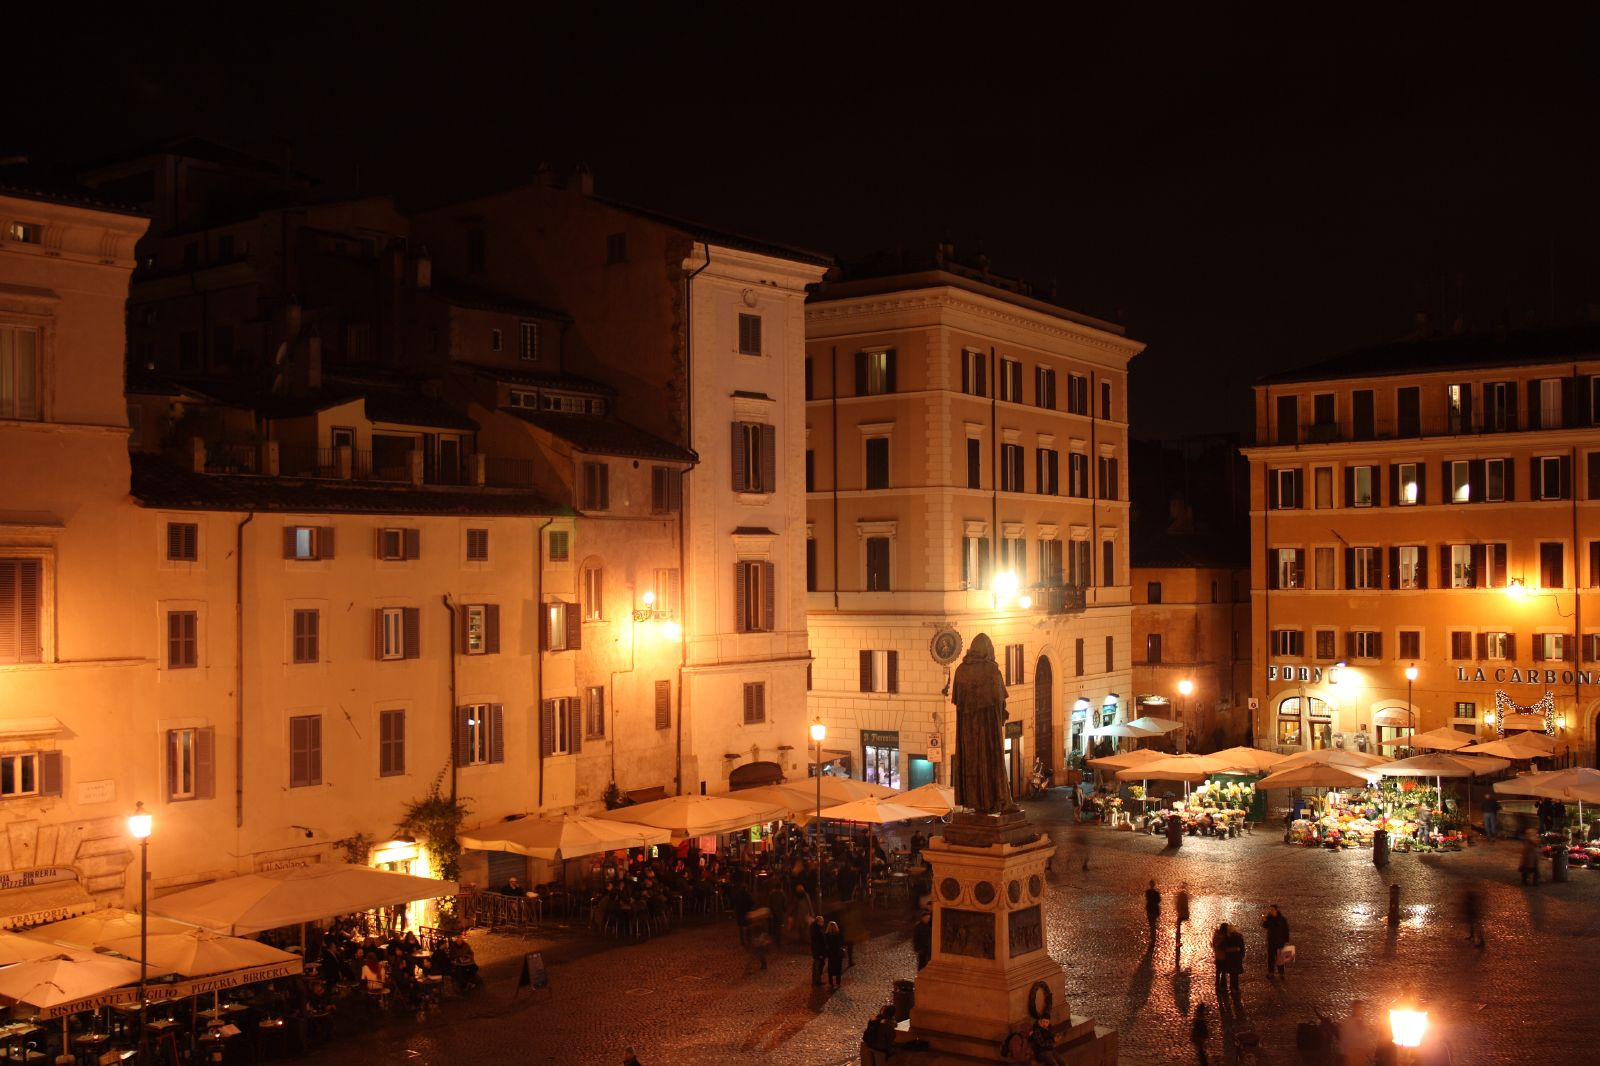 campo de fiori rome nightlife guide - photo#11